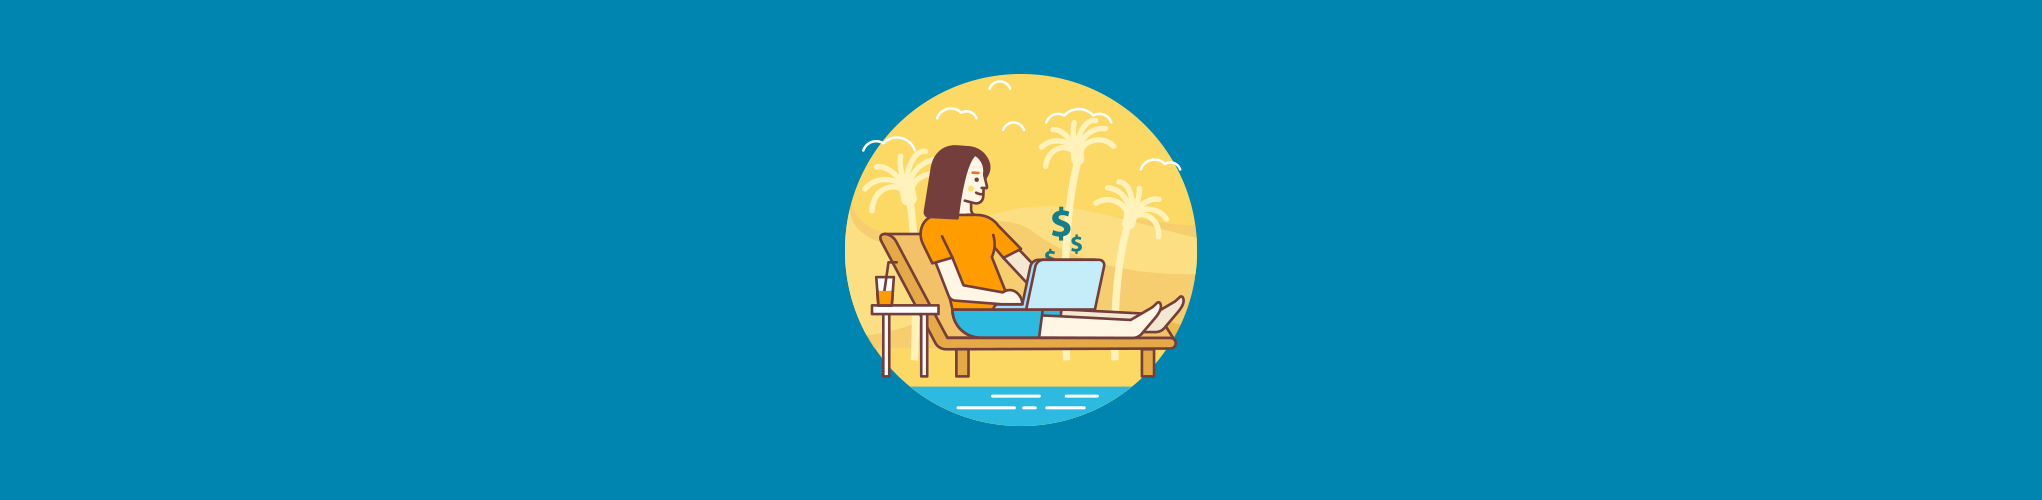 How to Be a Digital Nomad While Running a Business